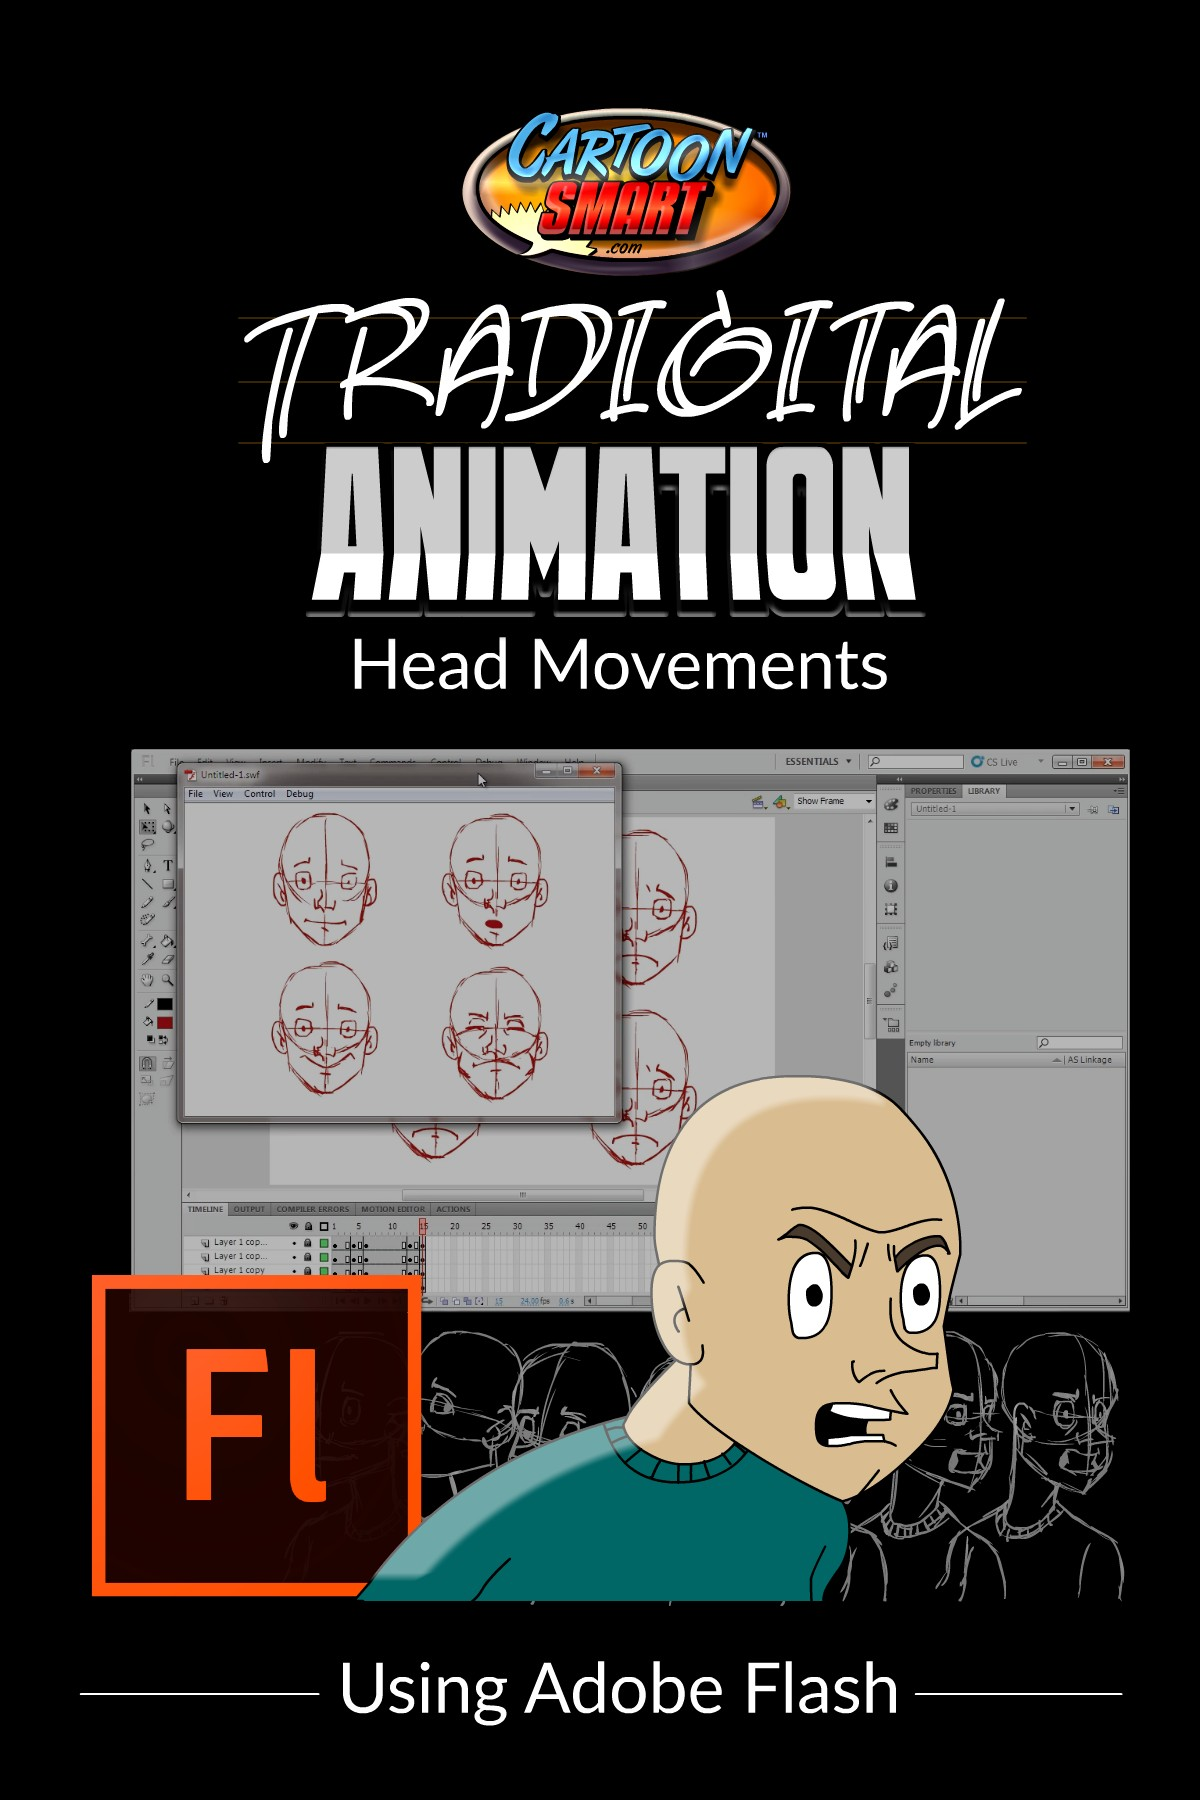 Tradigital Animation Tutorial - Head Movements